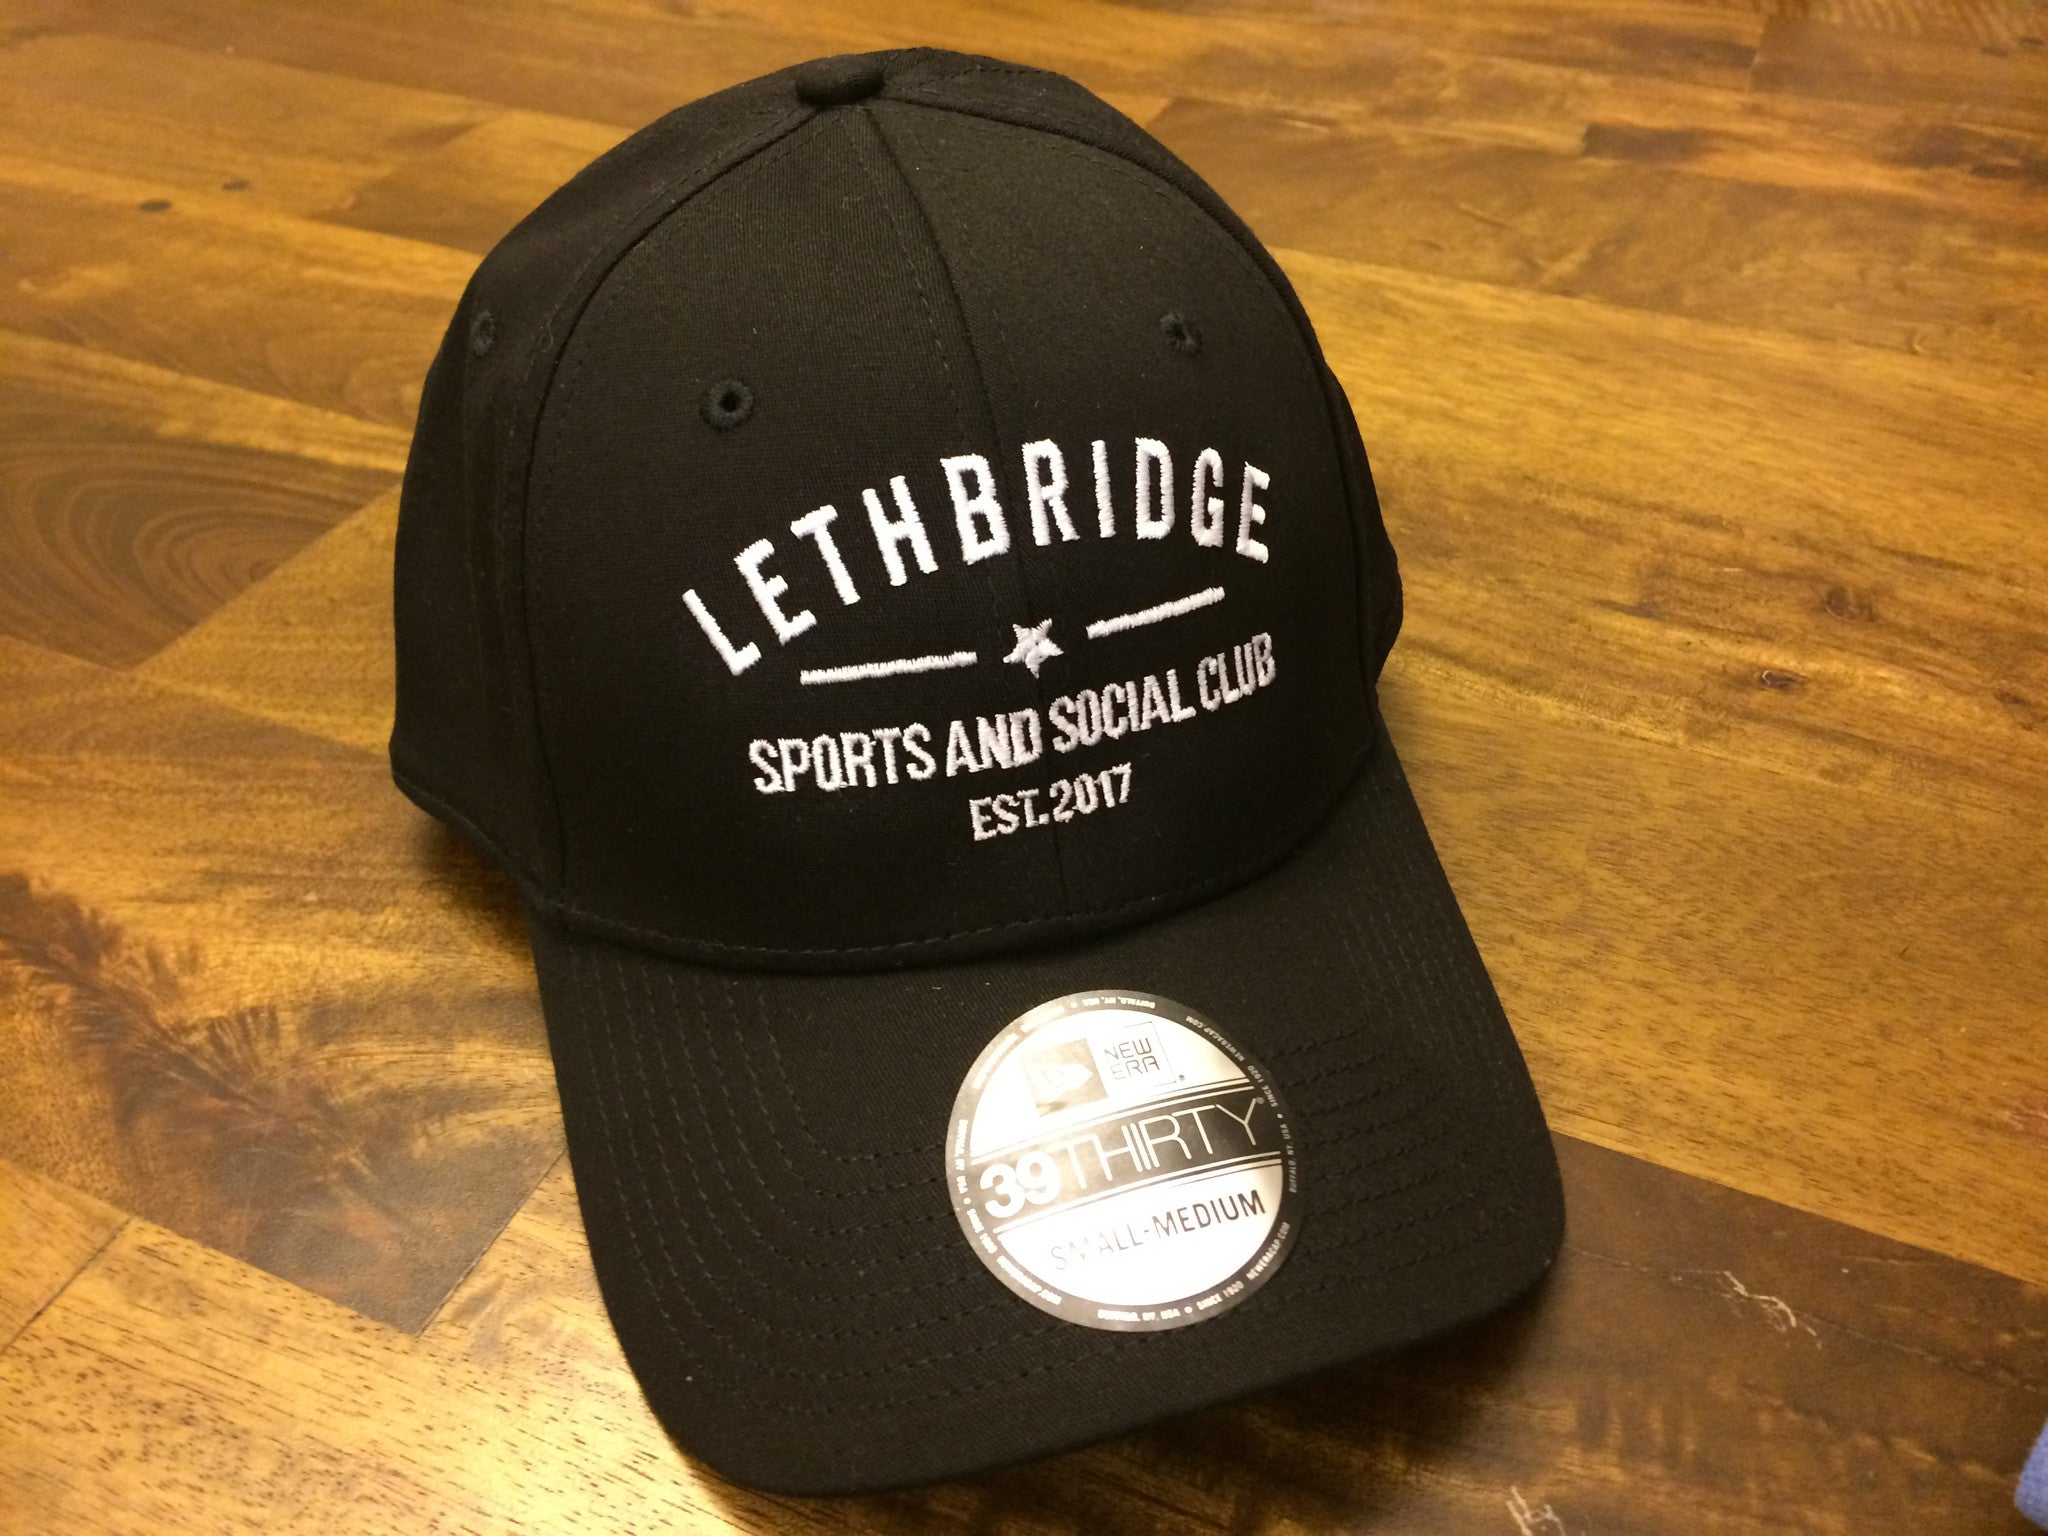 New Era Cap - Lethbridge Sports and Social Club